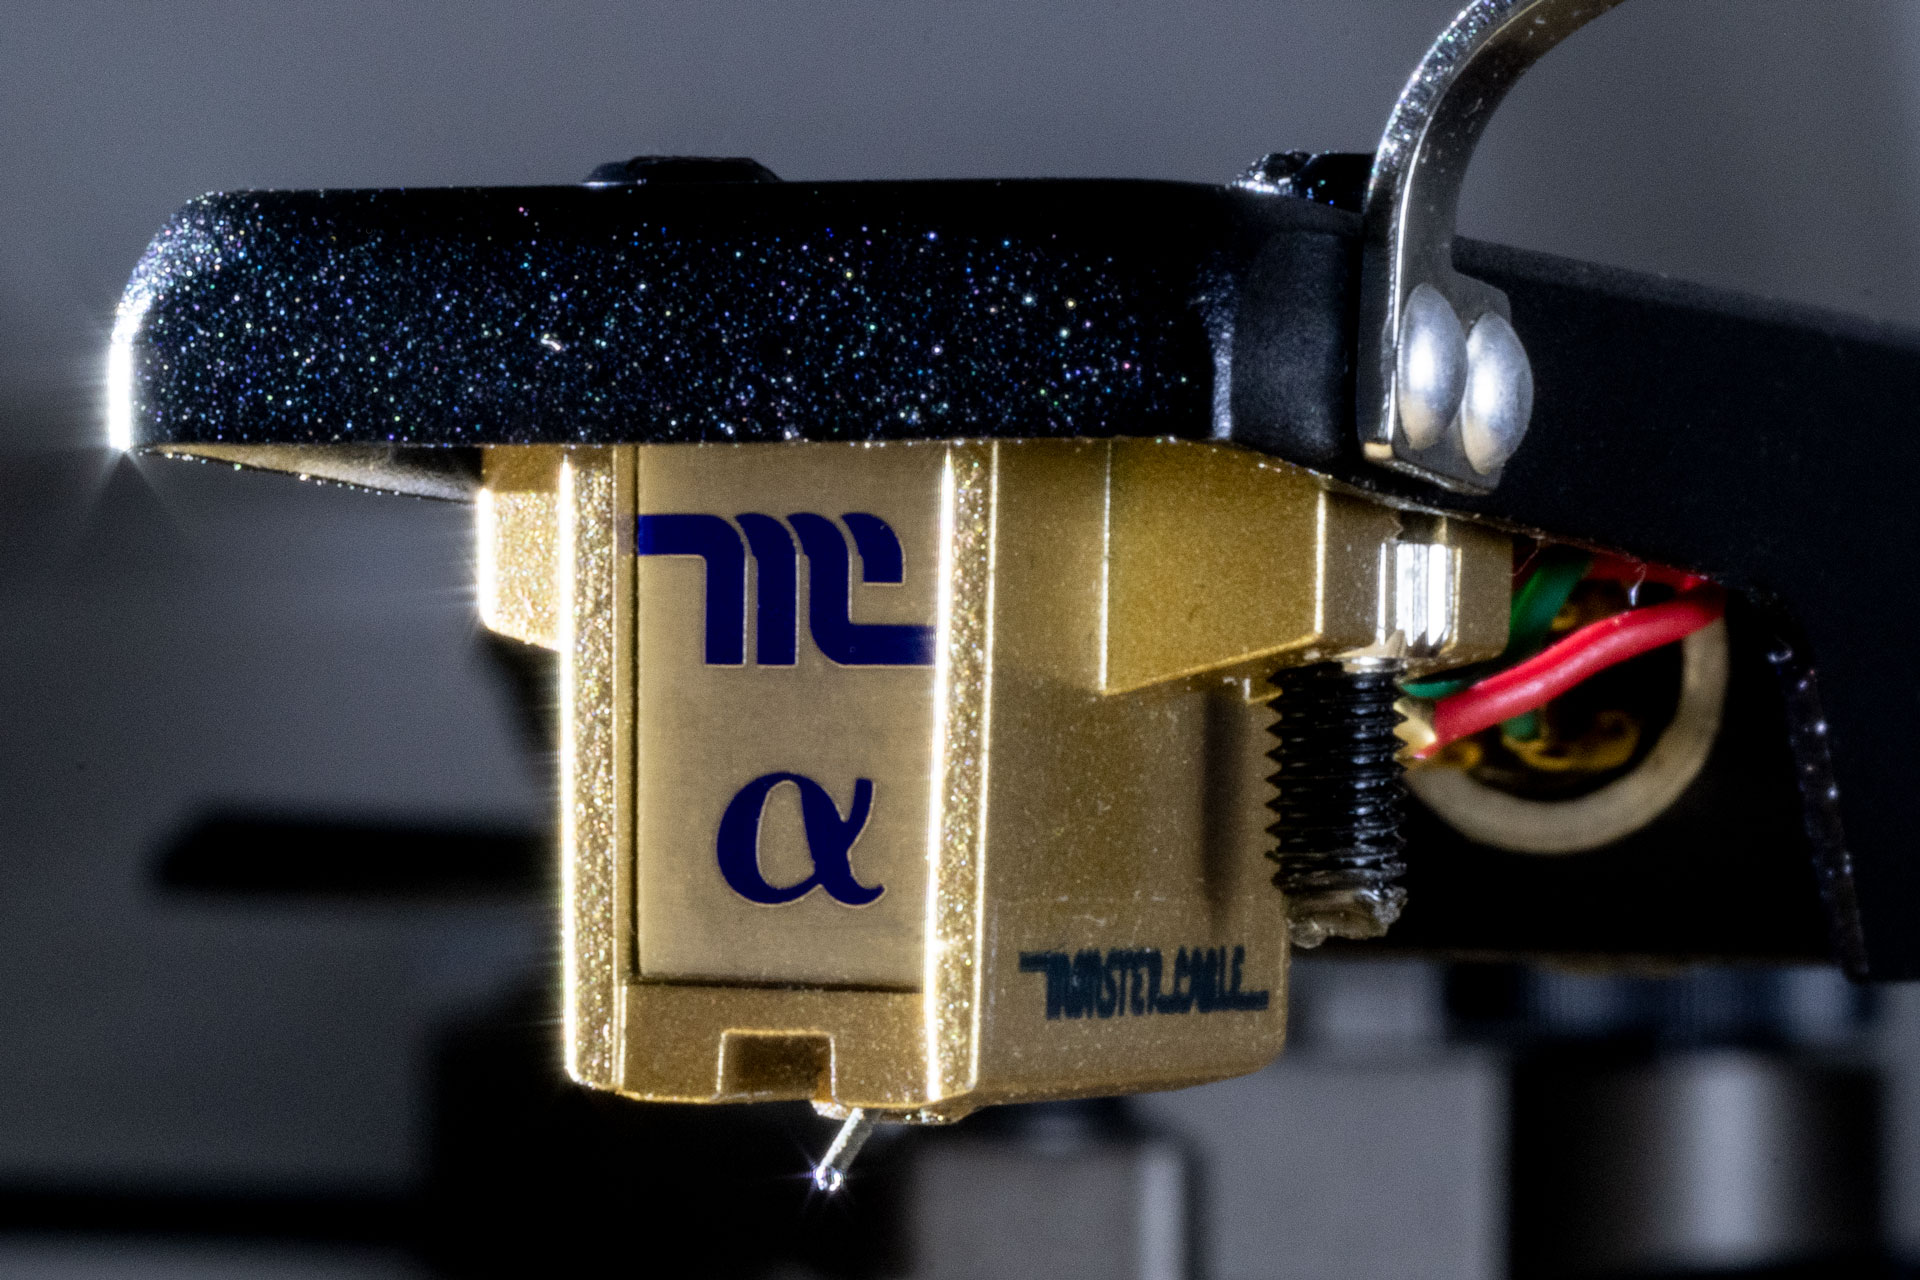 Monster Cable Alpha 1 moving coil phono cartridge, sans stylus